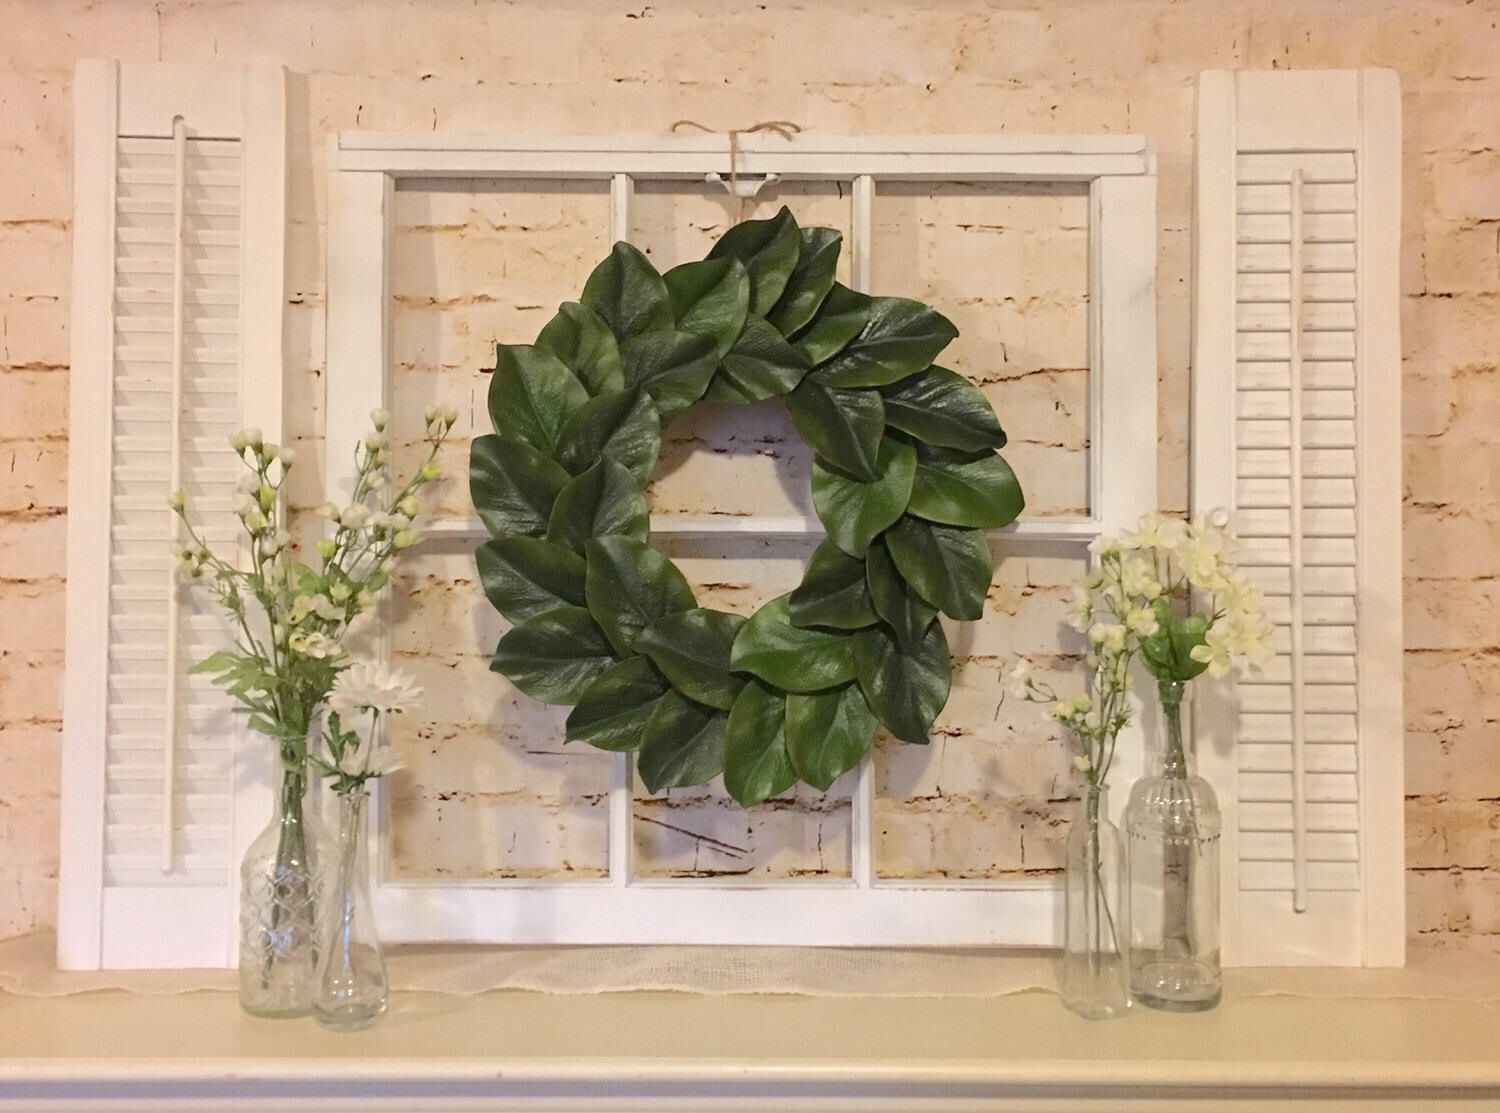 Farmhouse Wall Decor, Window Frame With Shutters, Magnolia For Shutter Window Hanging Wall Decor (View 18 of 30)